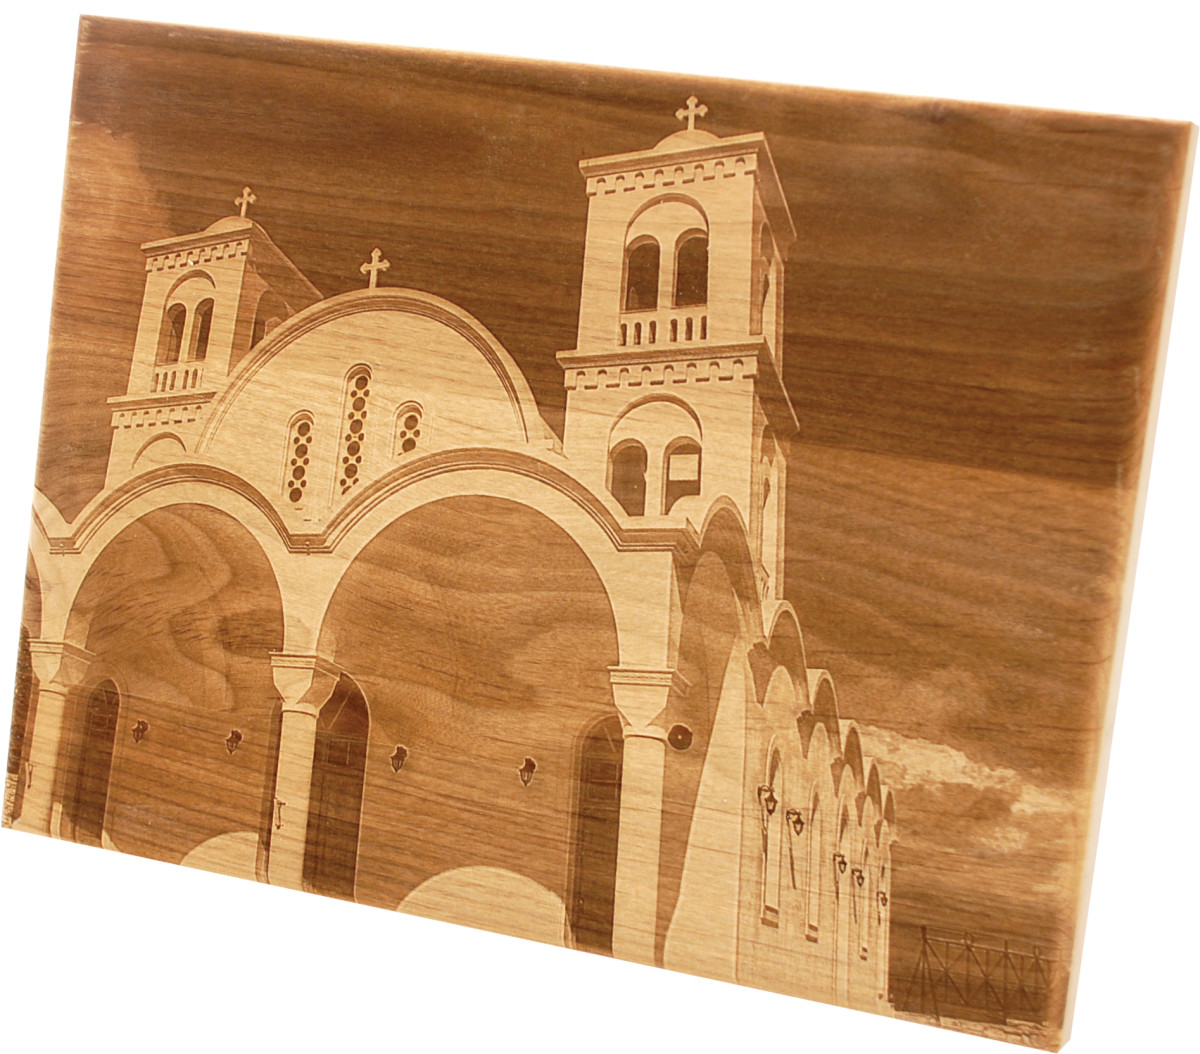 Laser engraving from photographs makes it easy to add personal artwork.